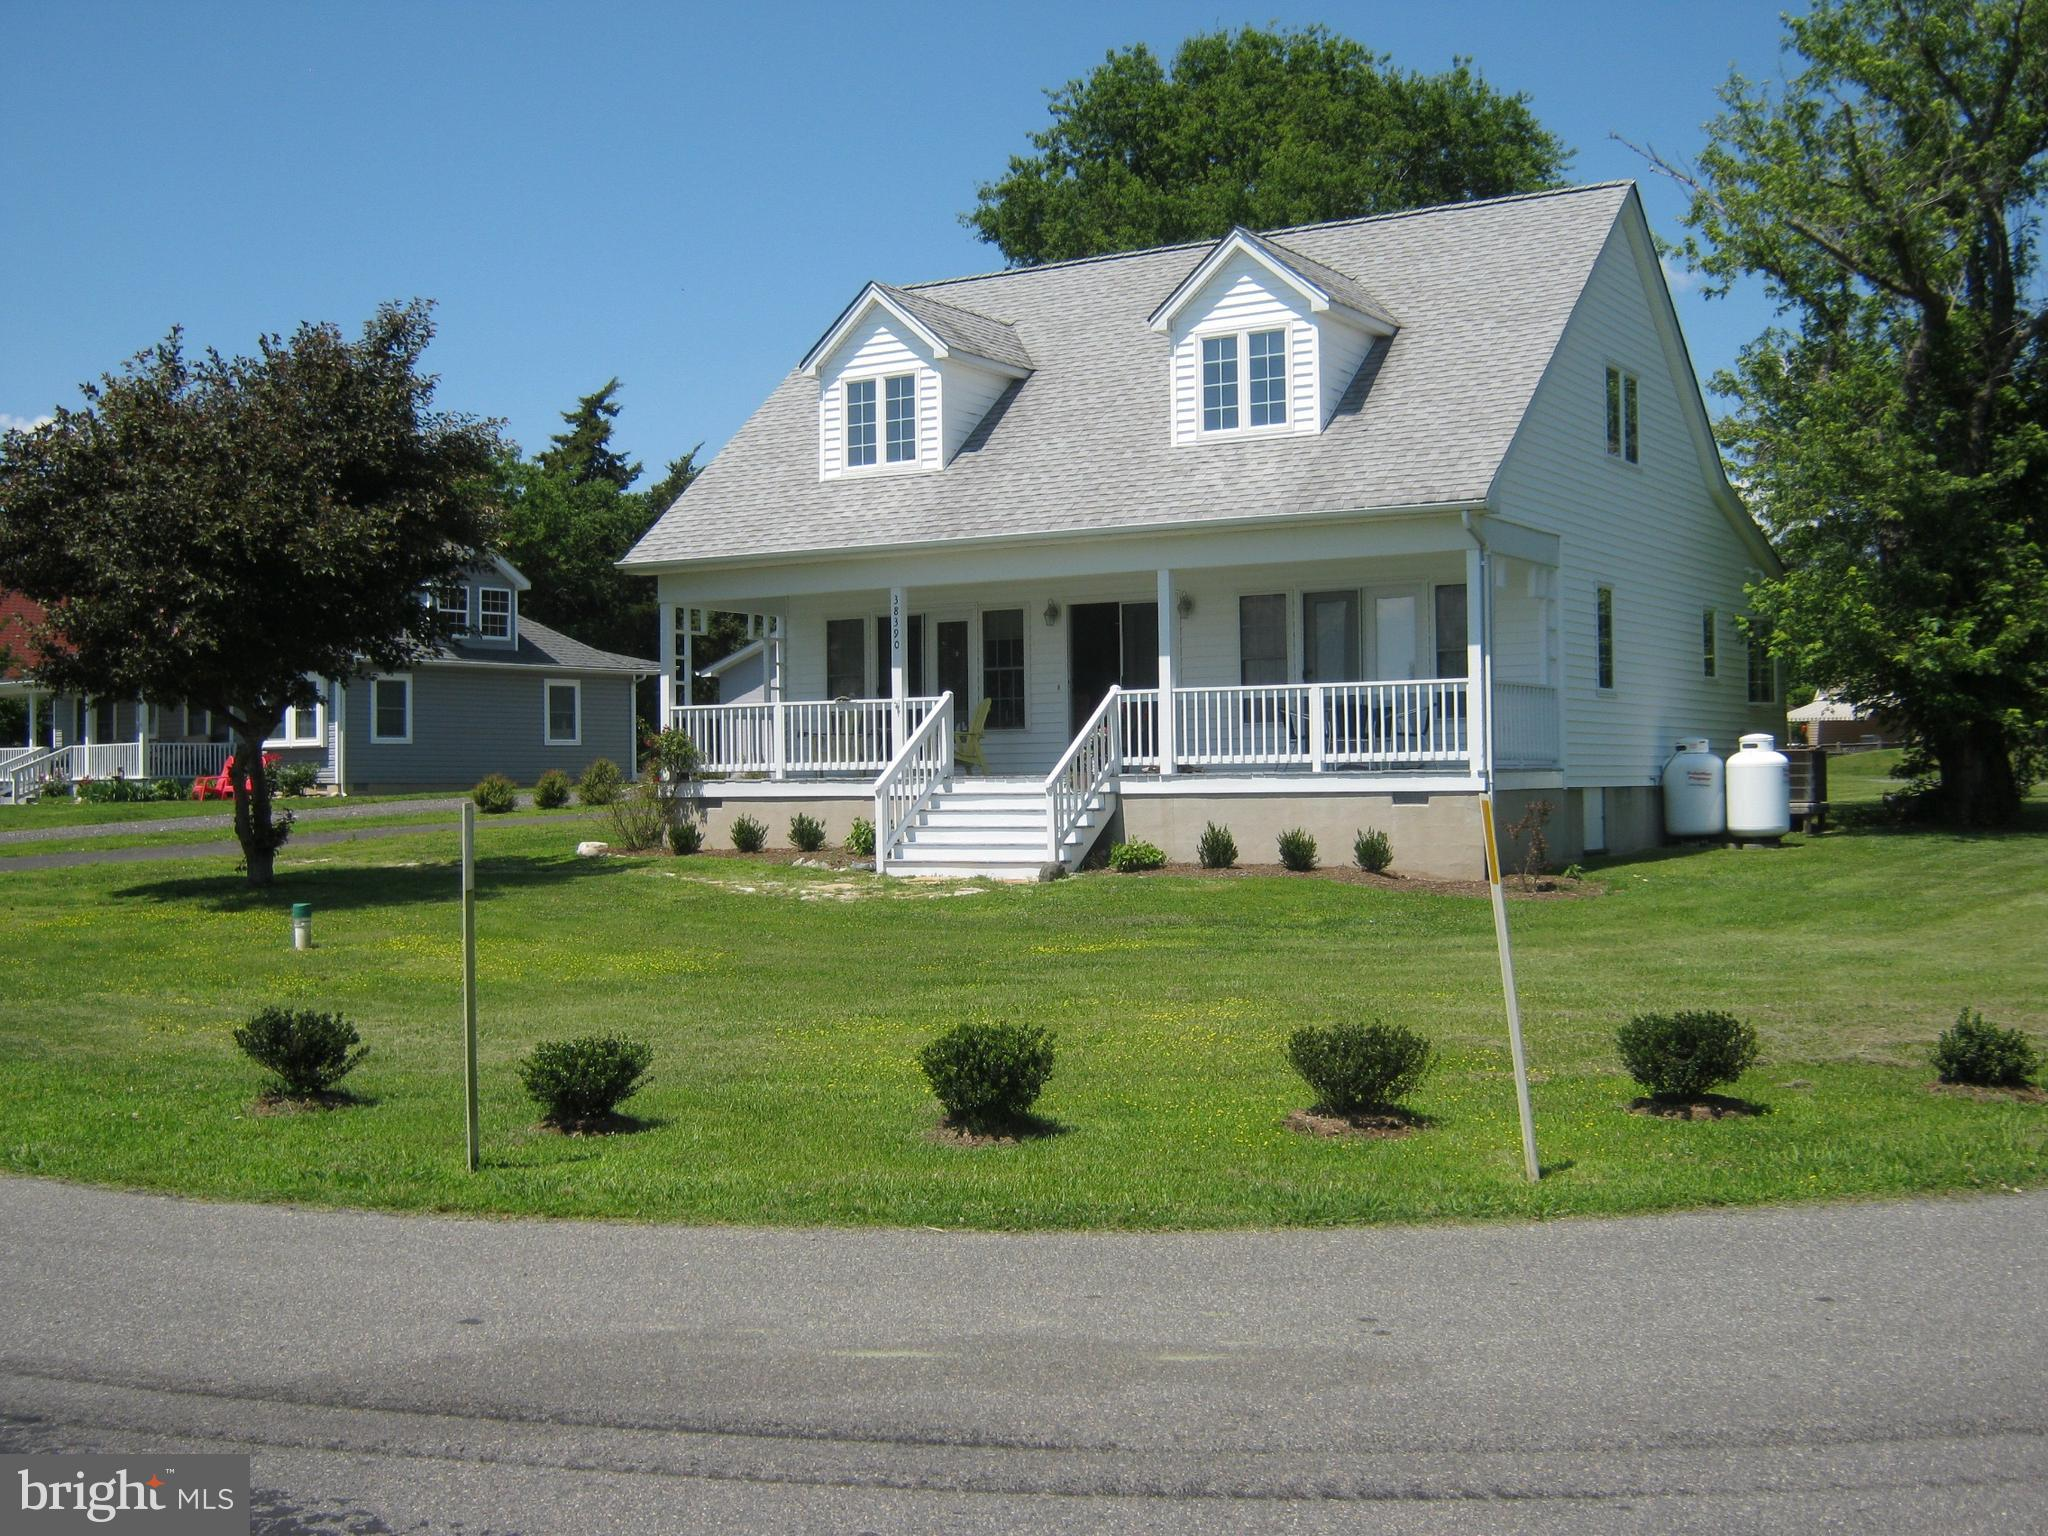 38390 POINT BREEZE ROAD, COLTONS POINT, MD 20626